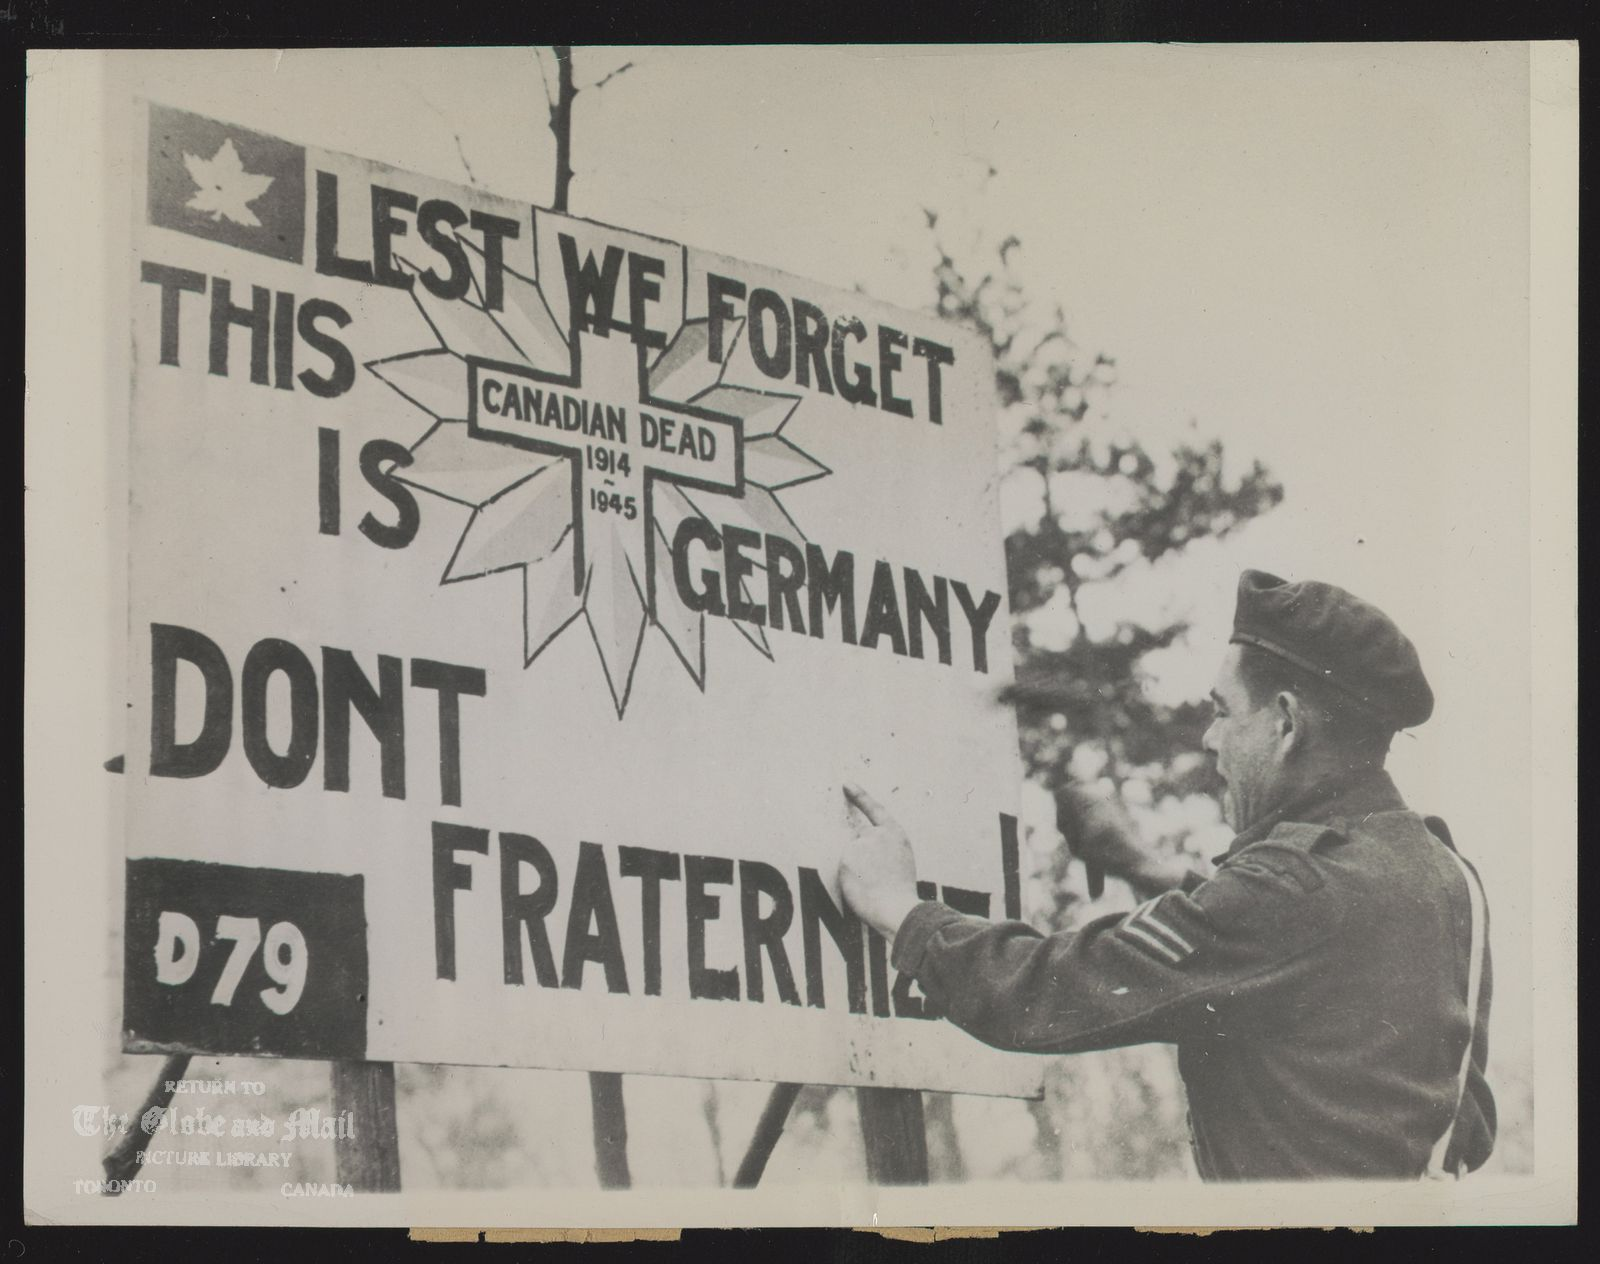 REMINDING ALLIES THEY ARE ON ENEMY SOIL. CPL. E.A. NAULT (ABOVE), OF MEADOW LAKE, SASKATOON, CANADA, PUTS UP A SIGN ALONG THE ROAD TO CALCAR, GERMANY, REMINDING ALLIED TROOPS THAT THEY ARE ON ENEMY SOIL AND WARNING THEM AGAINST FRATERNIZING WITH THE ENEMY. 3-7-45 [1945]